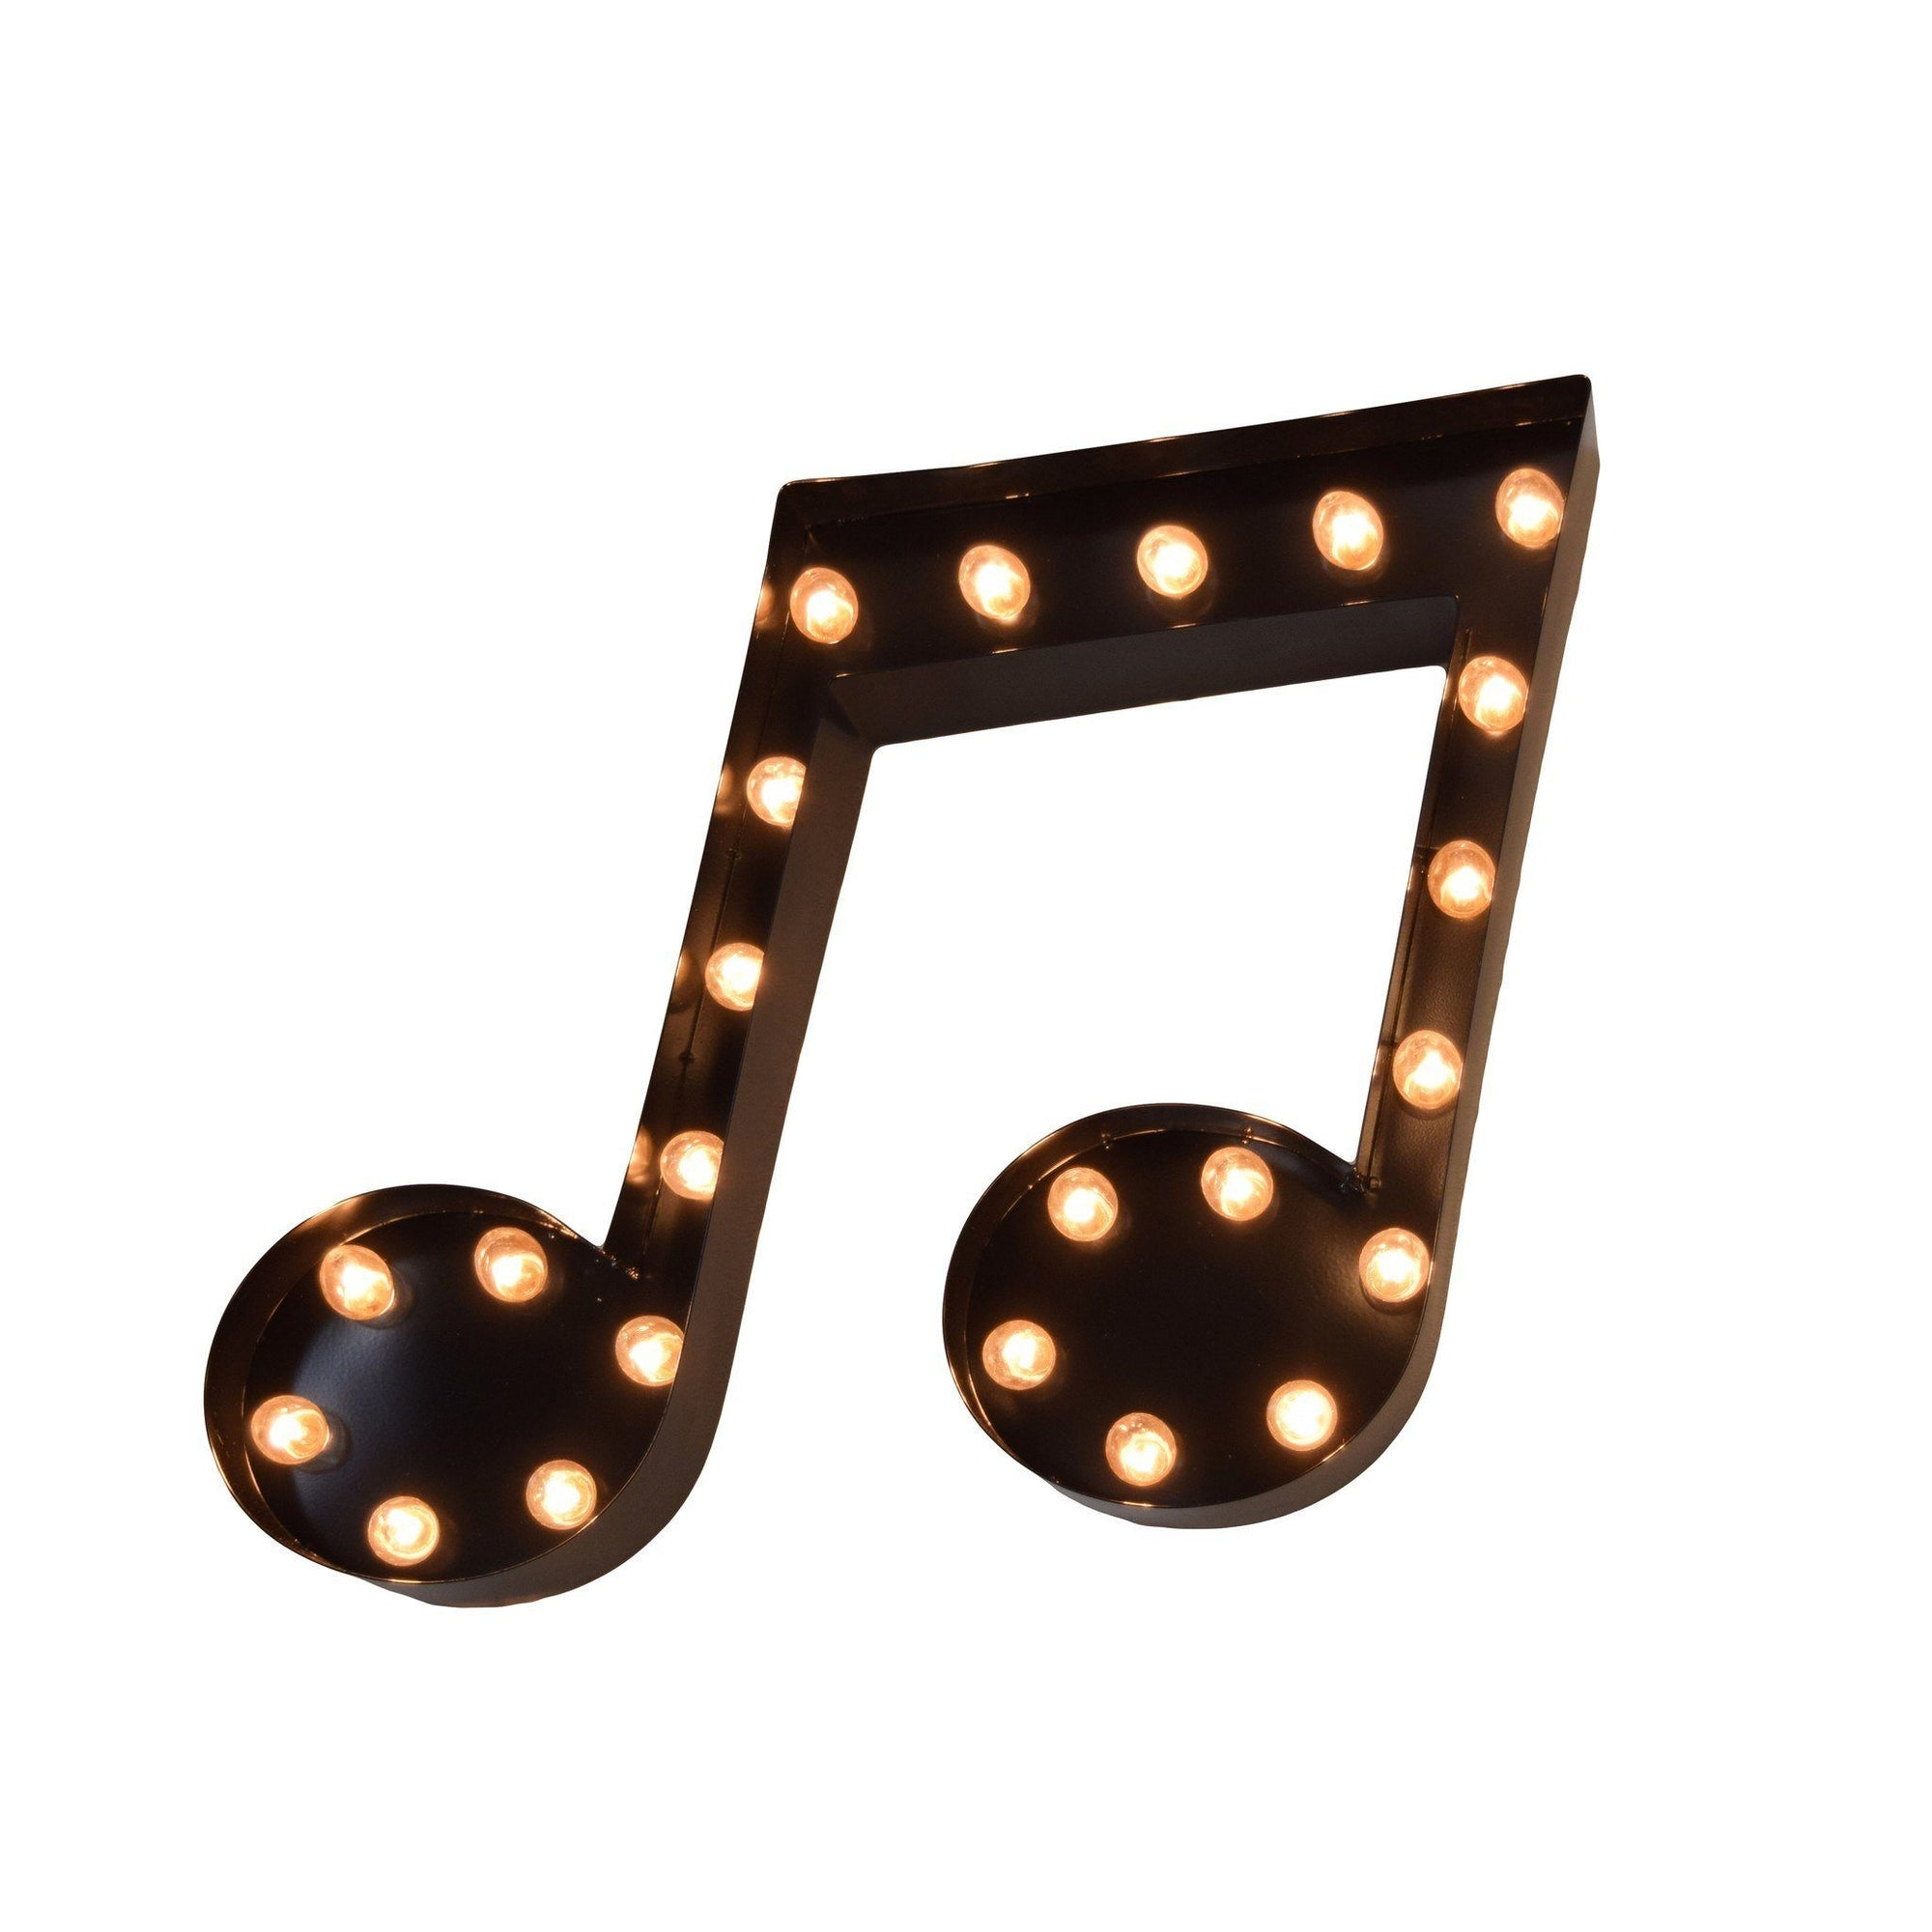 Marquee Symbol Lights - Music Note Vintage Marquee Lights Sign (Black Finish)